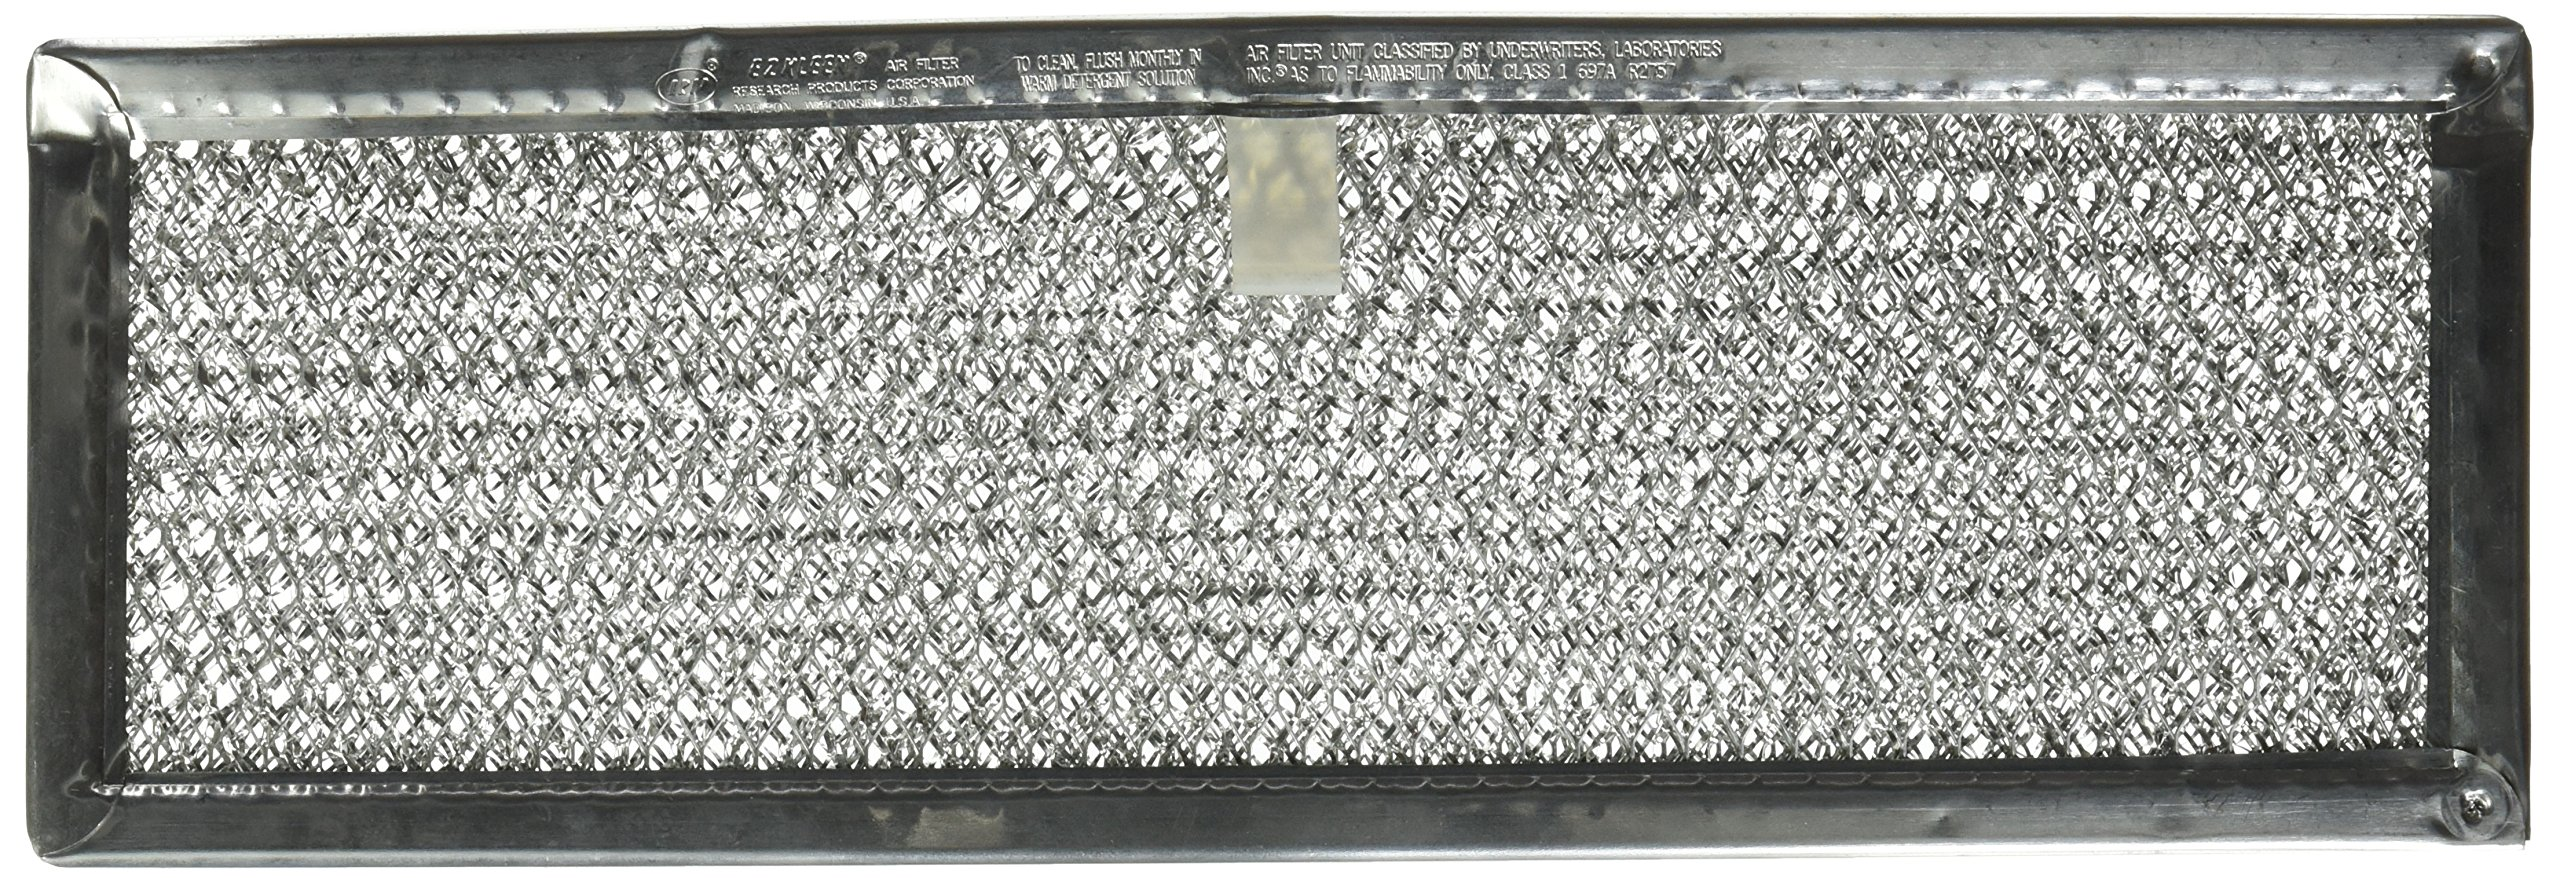 Dacor 82766 GREASE FILTER RV30